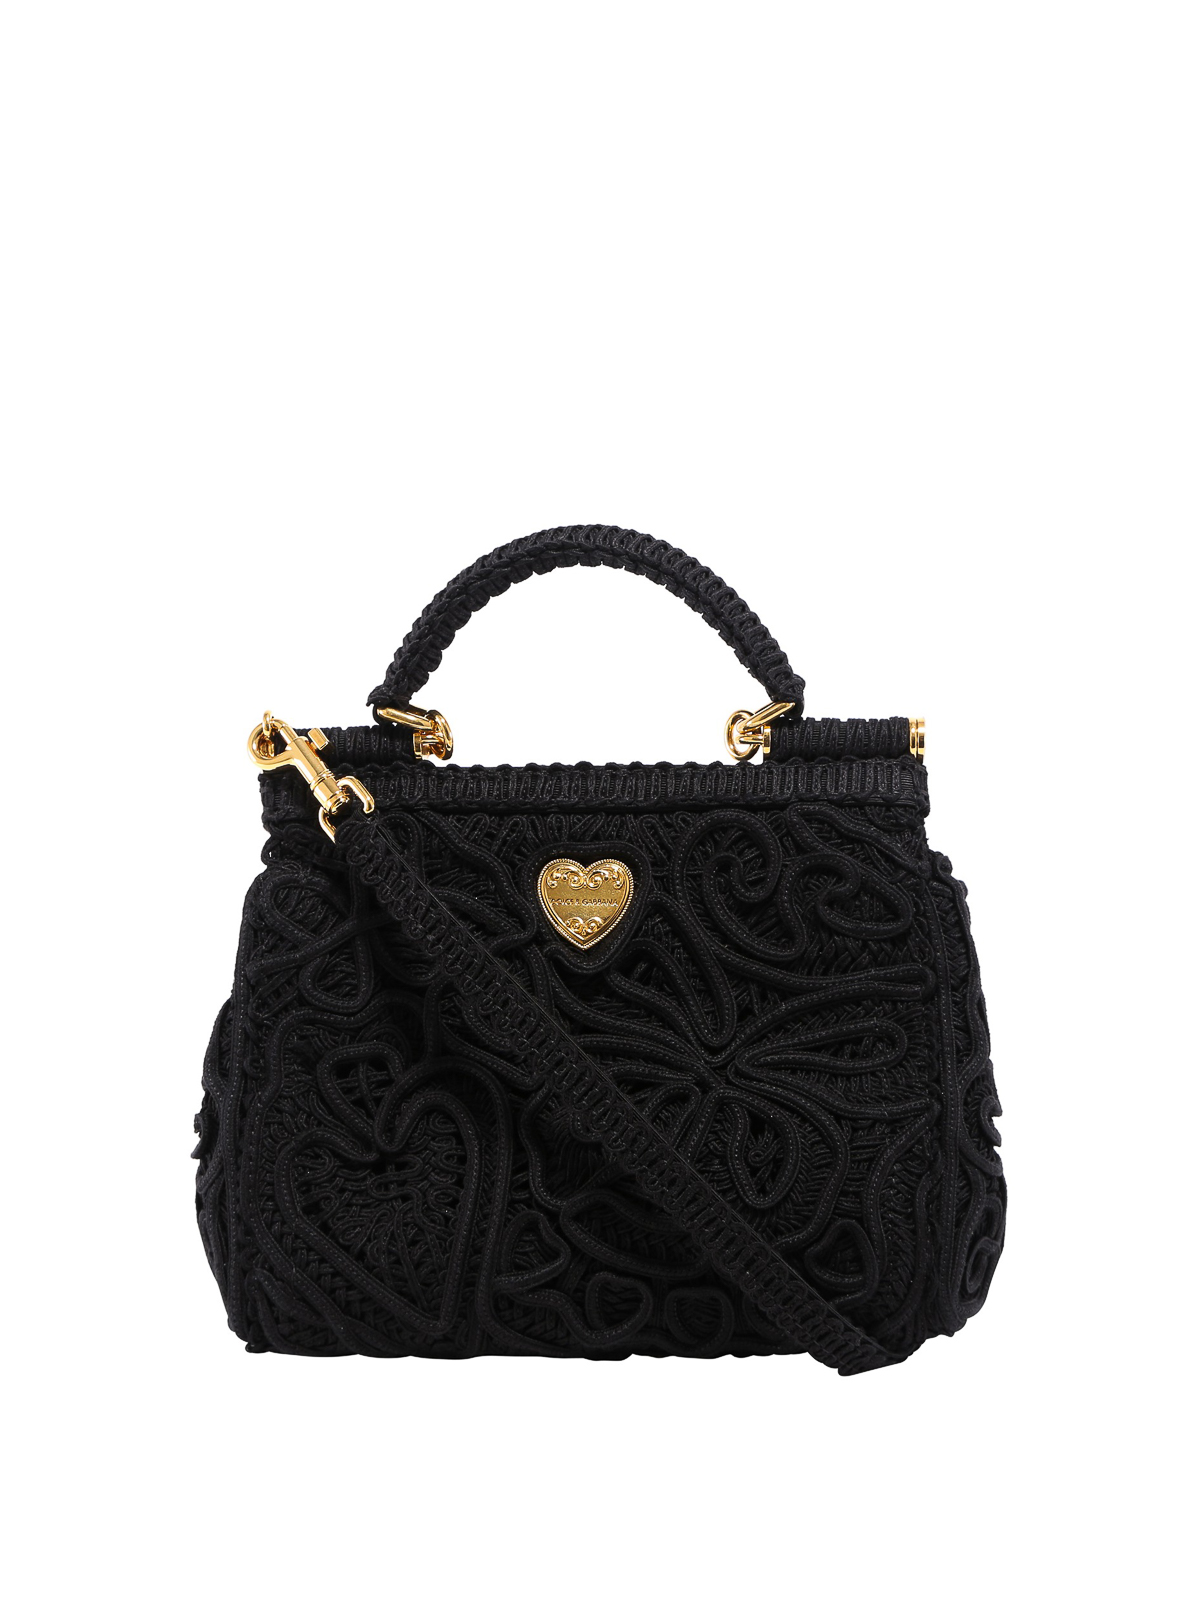 Dolce & Gabbana SICILY CORDONETTO SMALL BAG